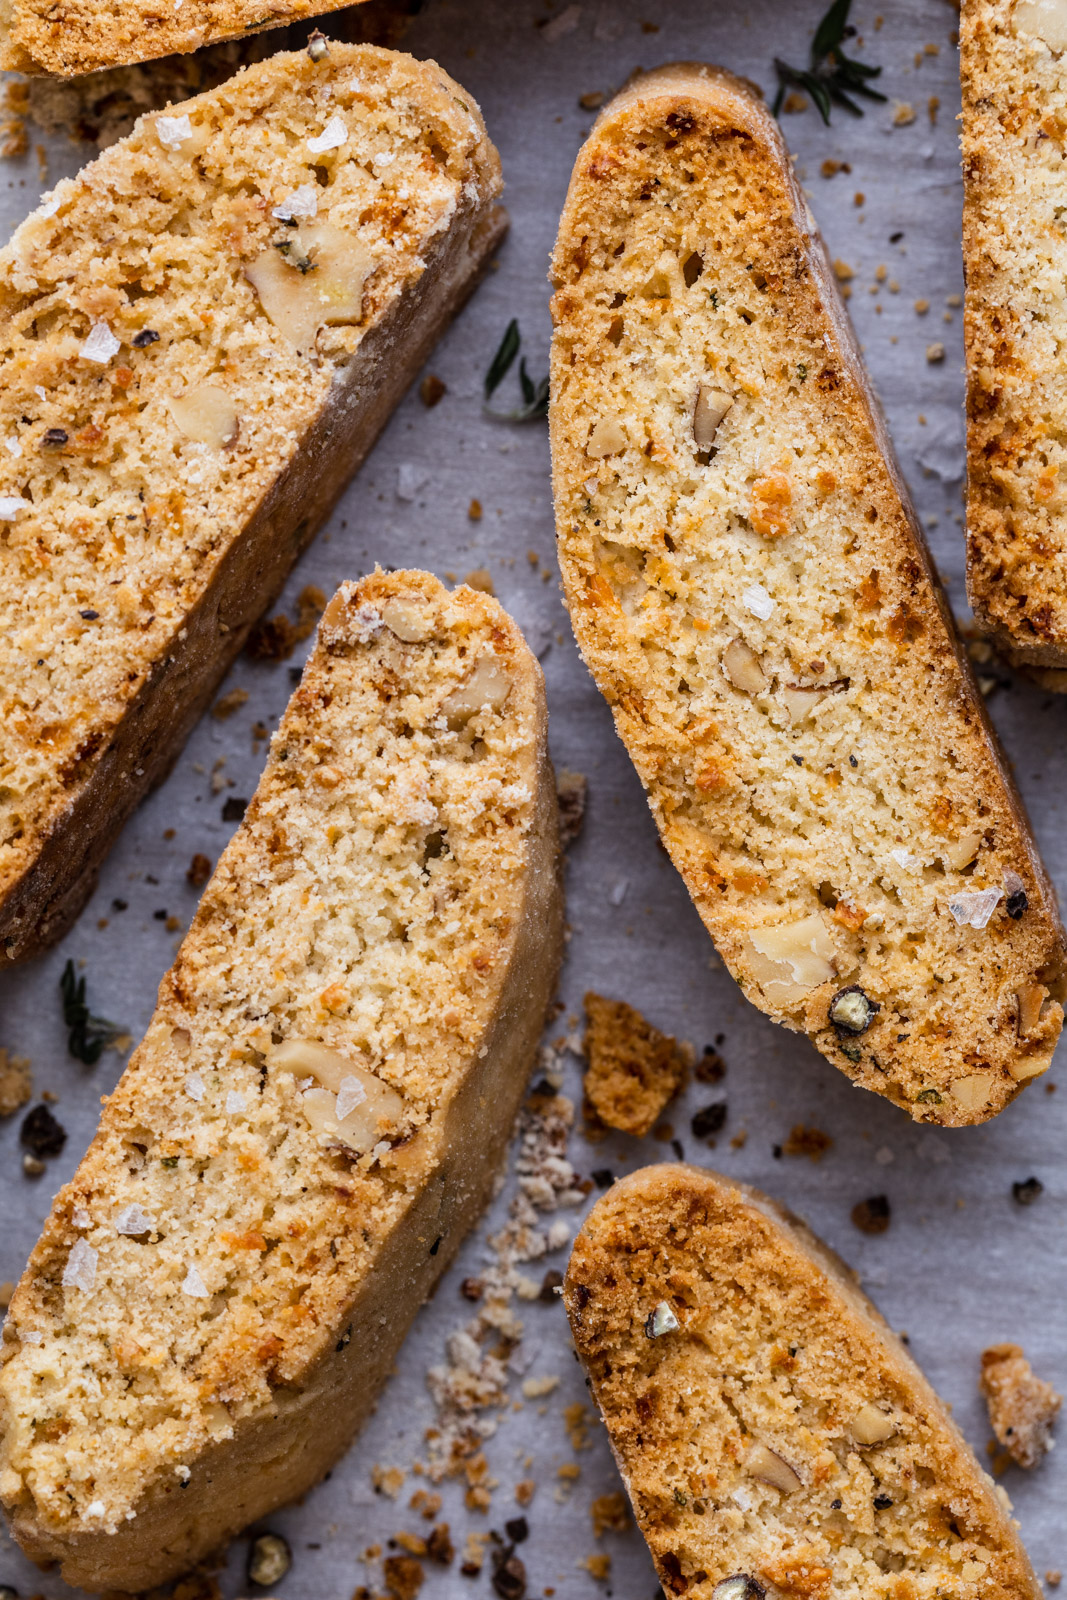 Savoury Parmesan and Herb Walnut Biscotti